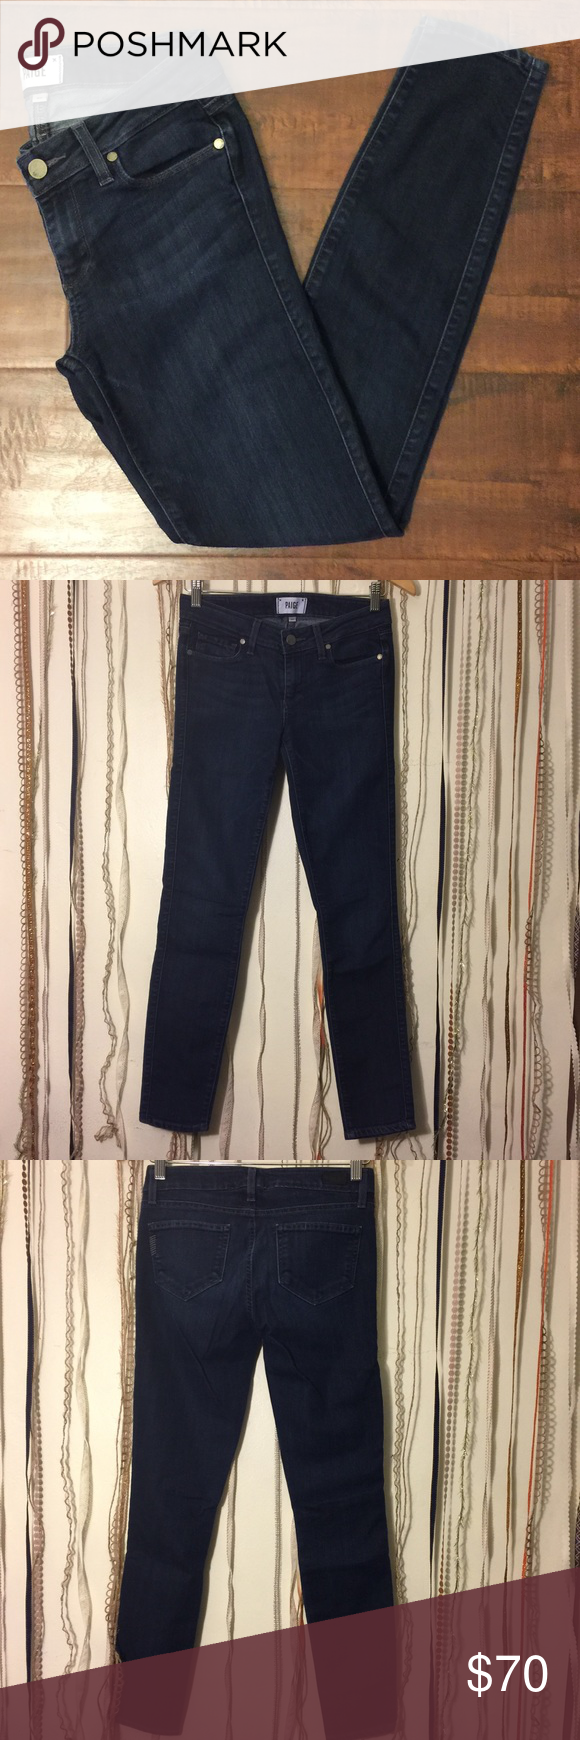 """PAIGE Verdugo Ultra Skinny PAIGE Verdugo Ultra Skinny  44%Cotton 30%Lyocell 26%Elastomultlester  Made in U.S.A  Inseam: 28"""" Out Seam: 35 1/2 Leg Opening: 5"""" Front Rise: 7 1/2 Hips: 15 1/2  🕊I accept reasonable offers!! I truly do! With the exception of items labeled """"Price Firm""""  🕊Serious buyers please & No Low ballers!  To me it's asking half or more off an item is Low Balling. Paige Jeans Jeans Skinny"""